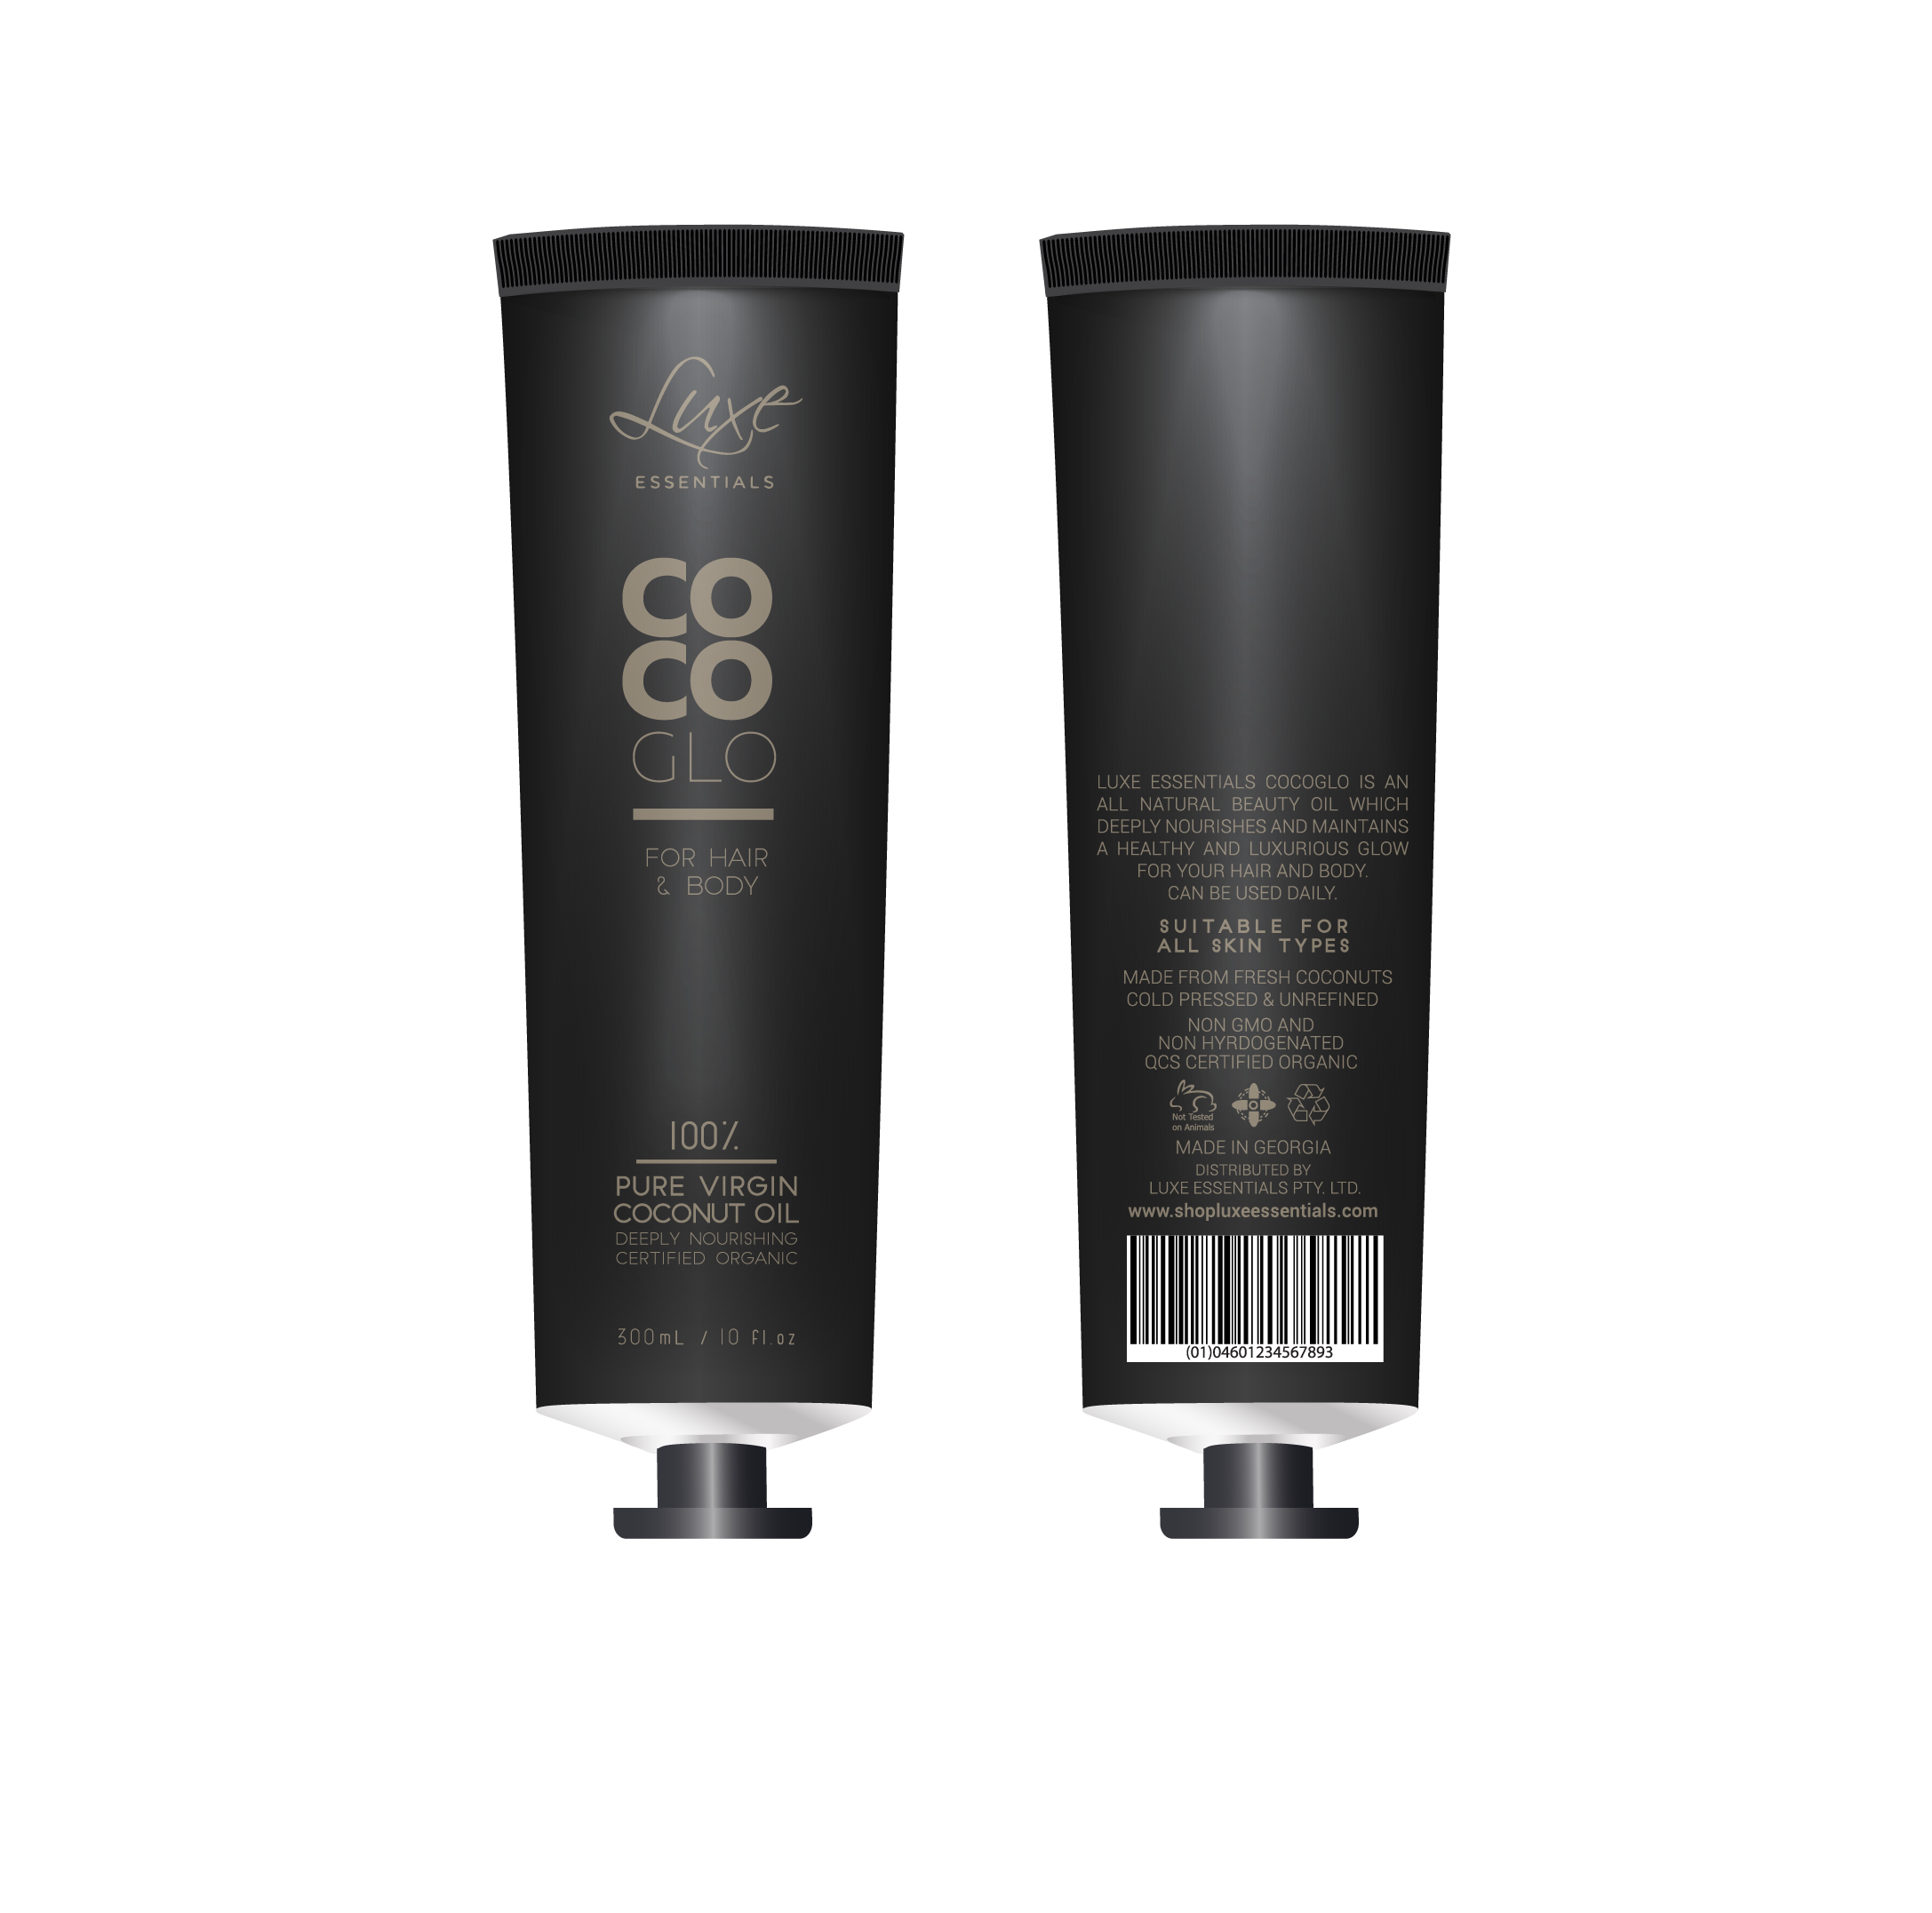 Create a simple chic, organic/natural beauty product label, designed for direct print on a tube